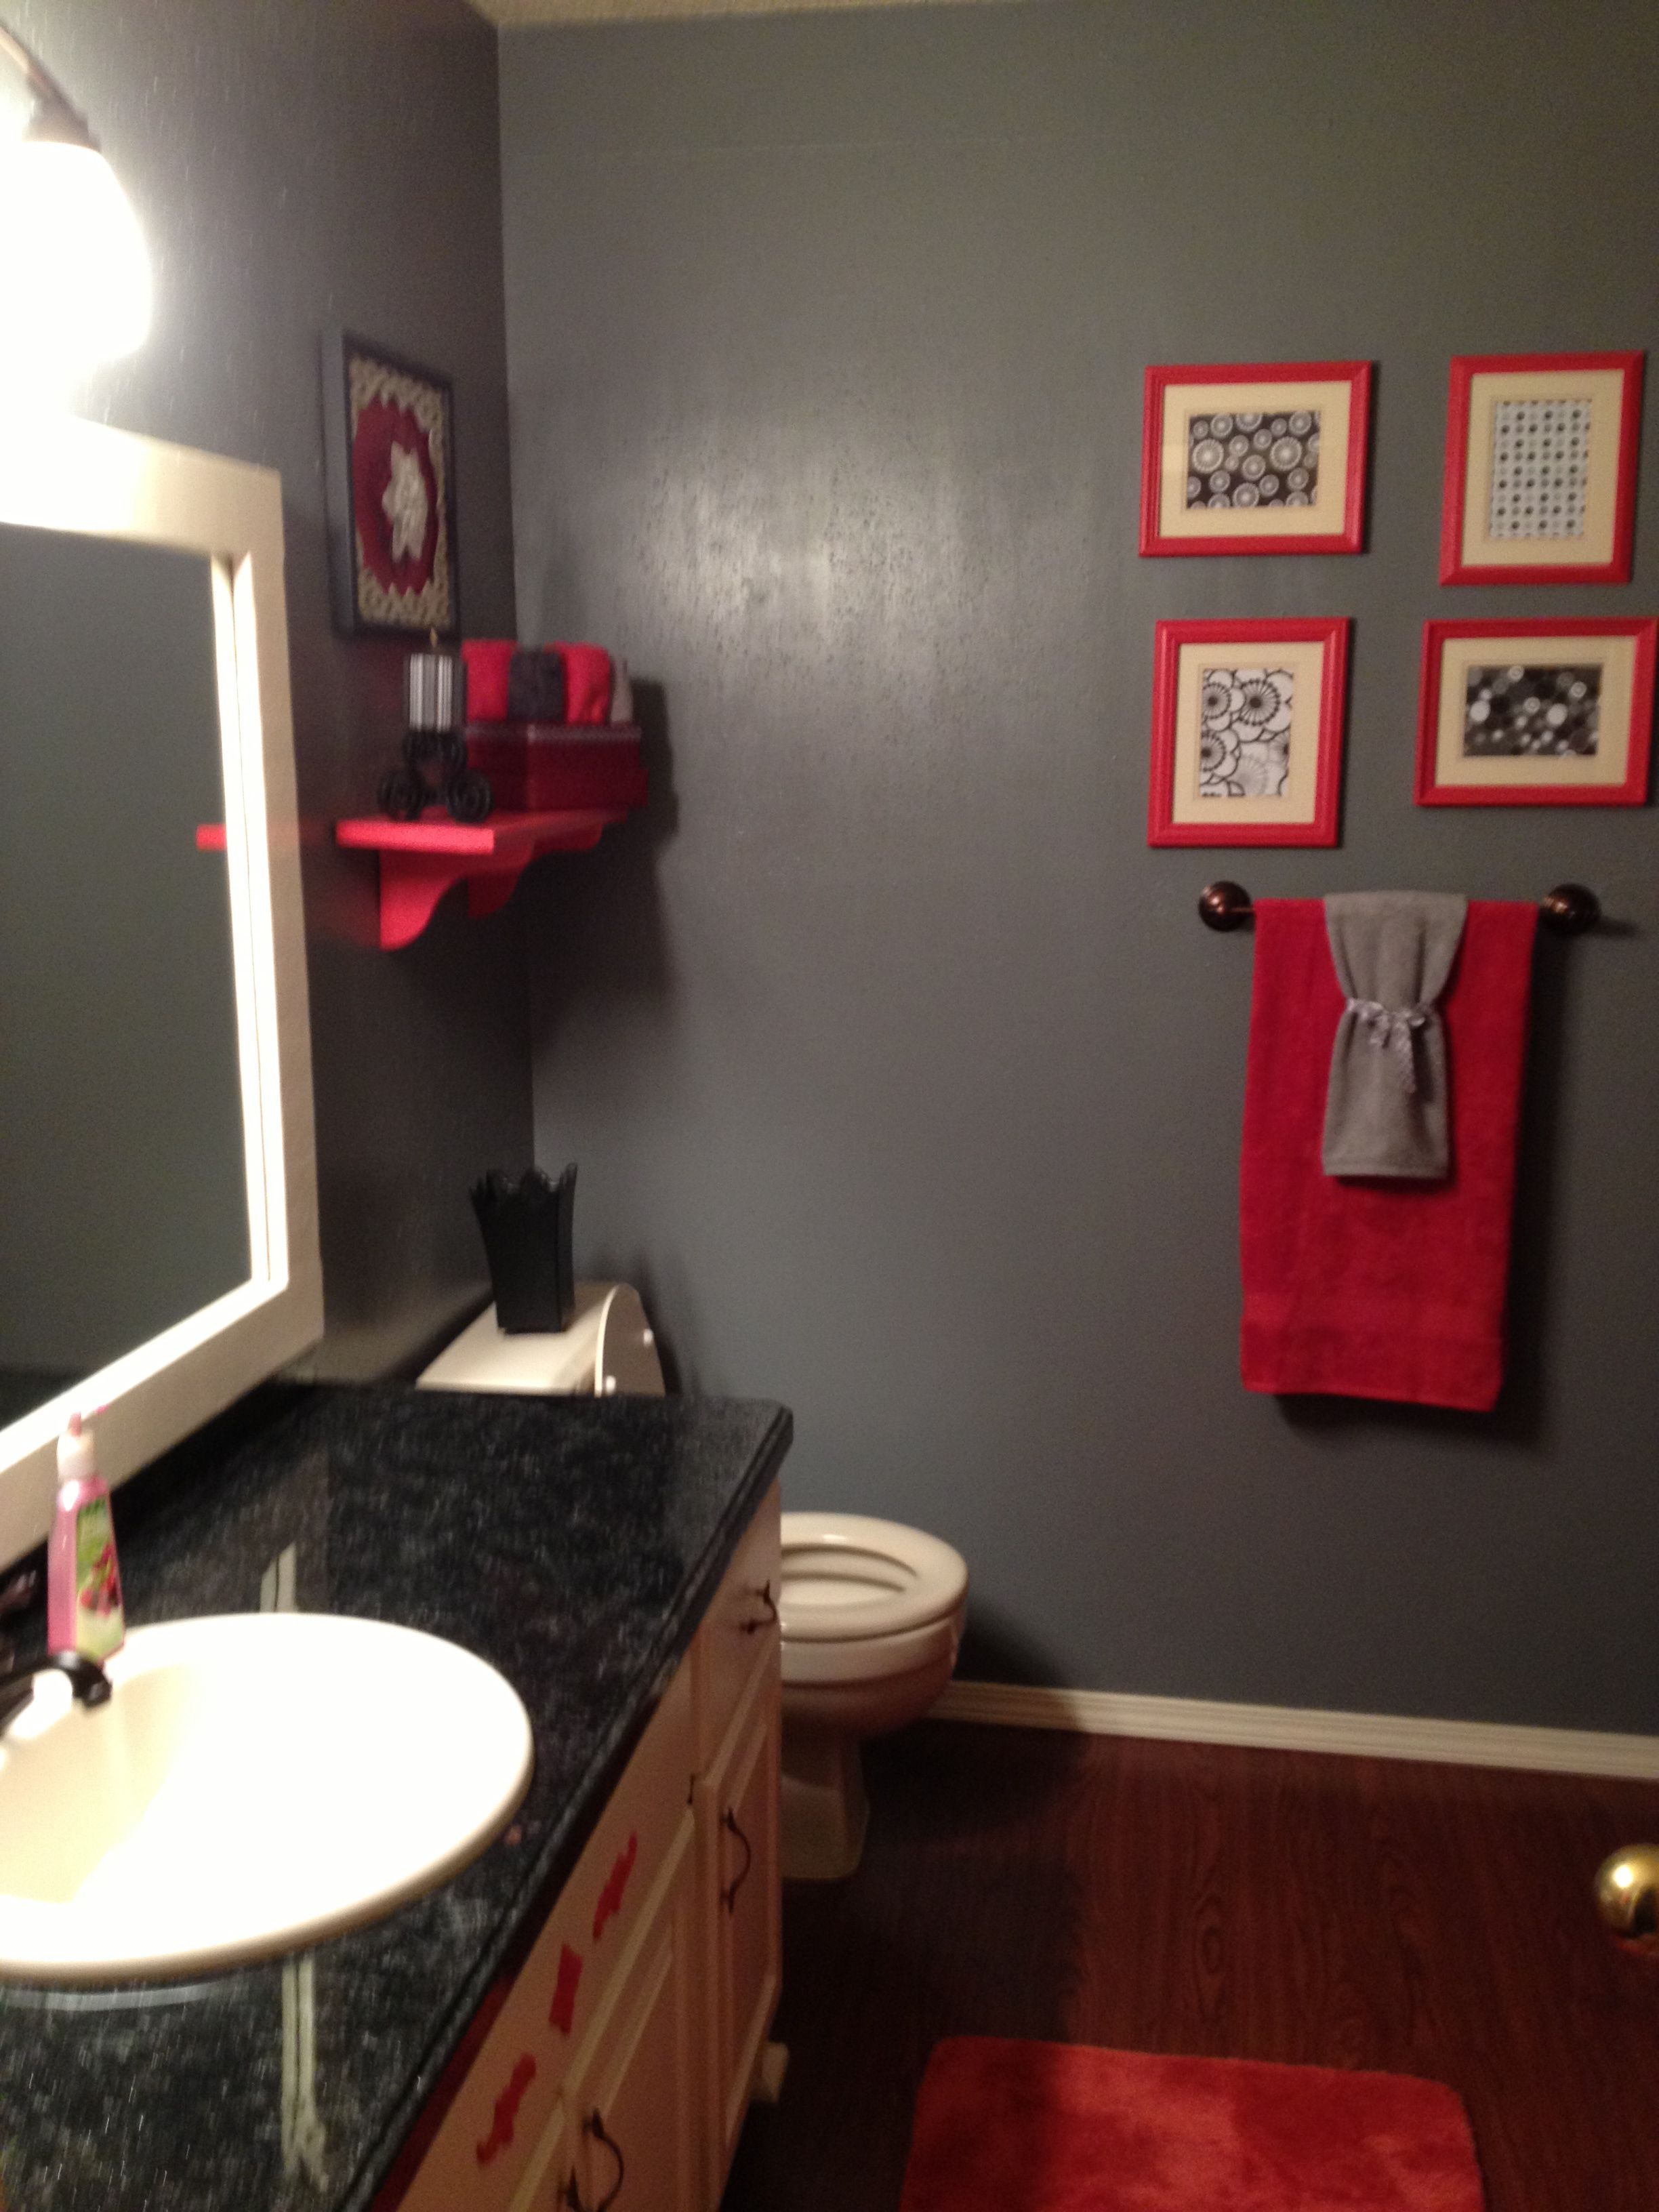 My bathroom makeover I laid new floor painted trim walls and